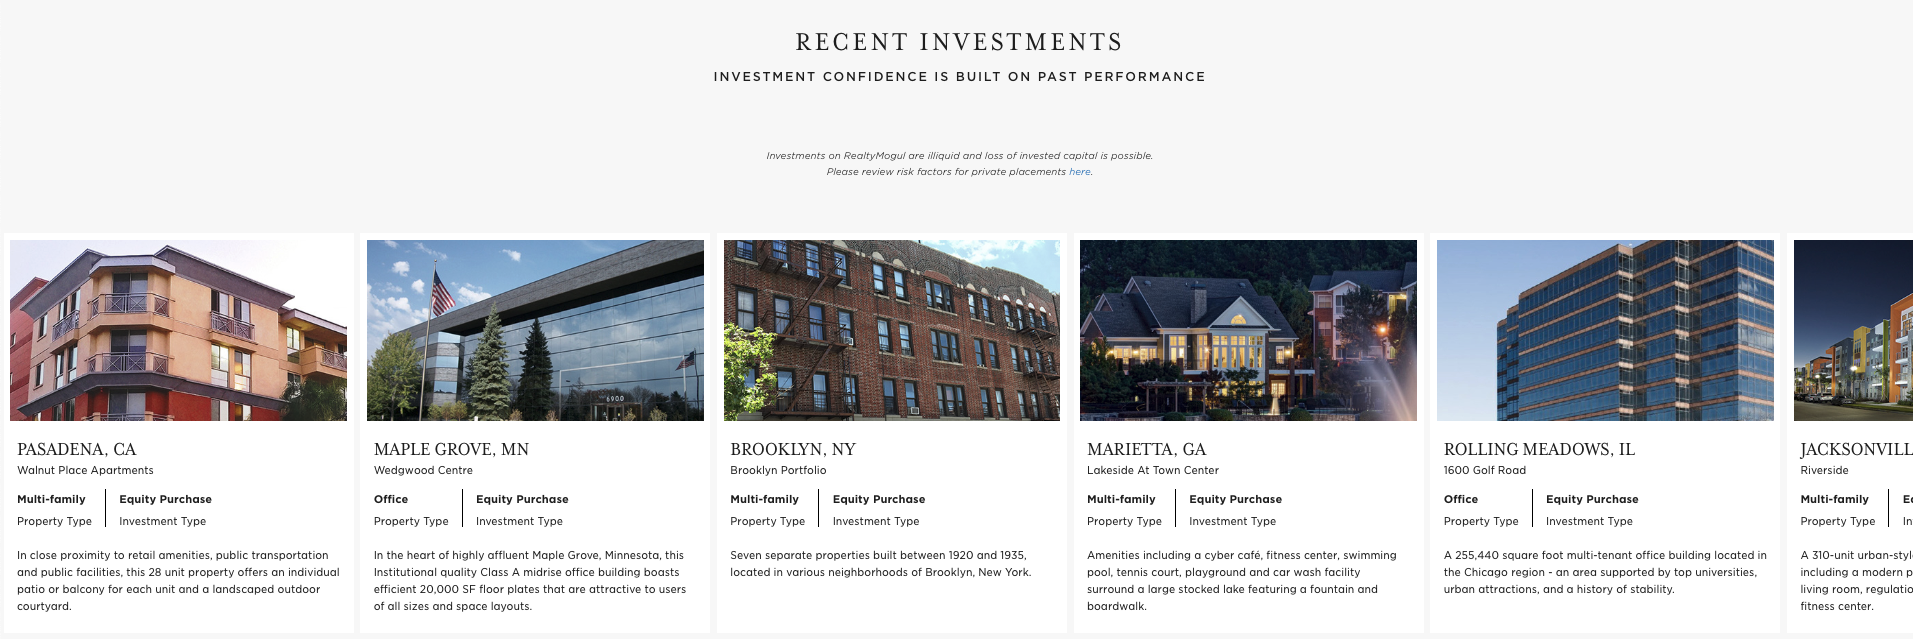 Fundrise real estate crowdfunding investments